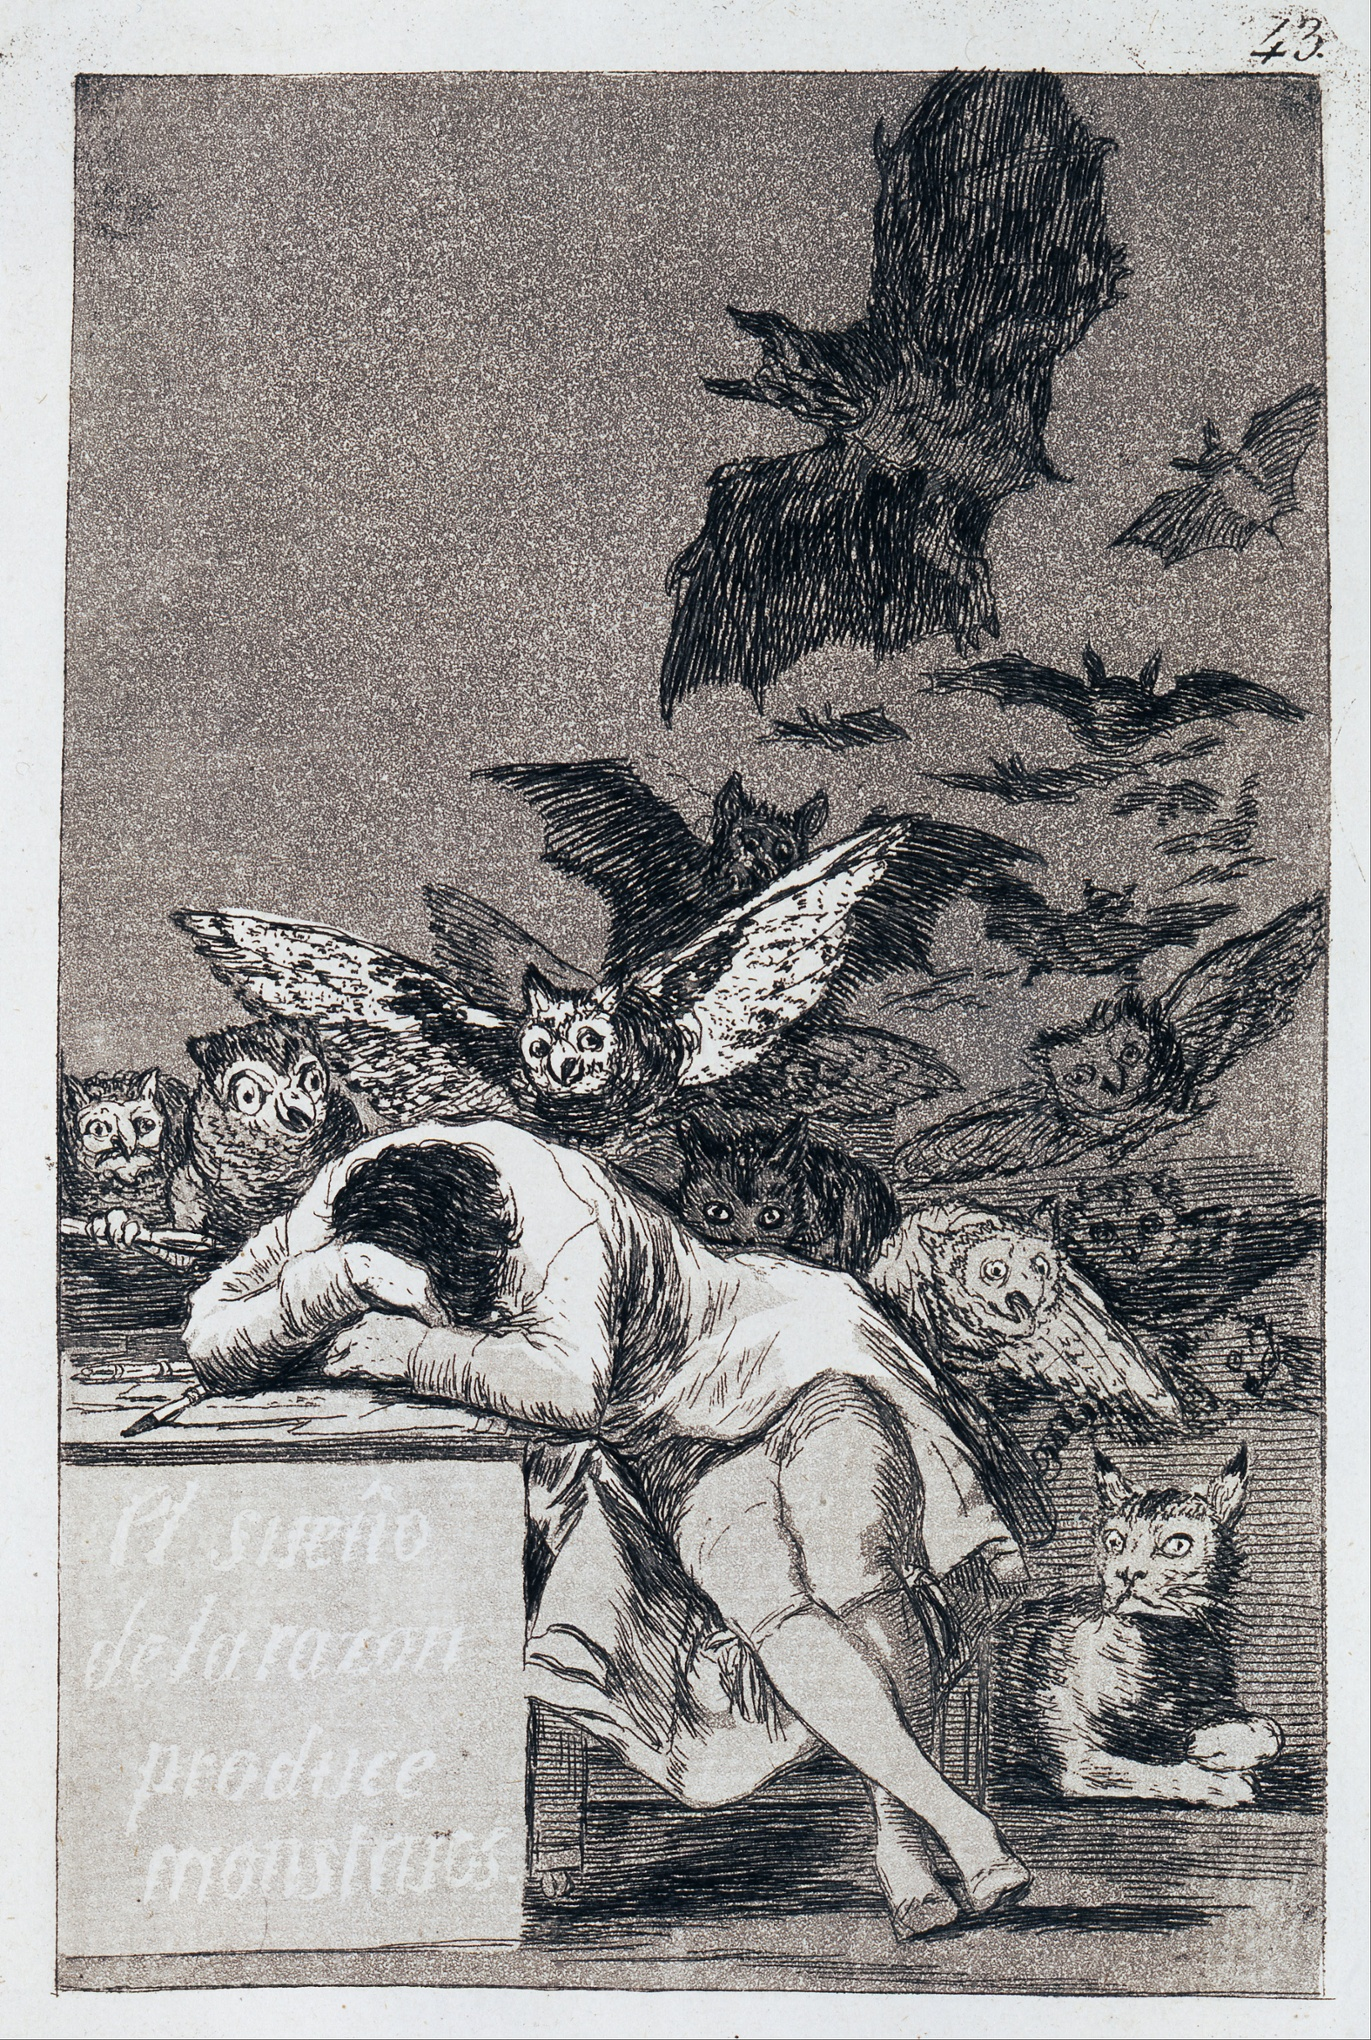 Francisco Goya y Lucientes – The sleep of reason produces monsters (c. 1799)